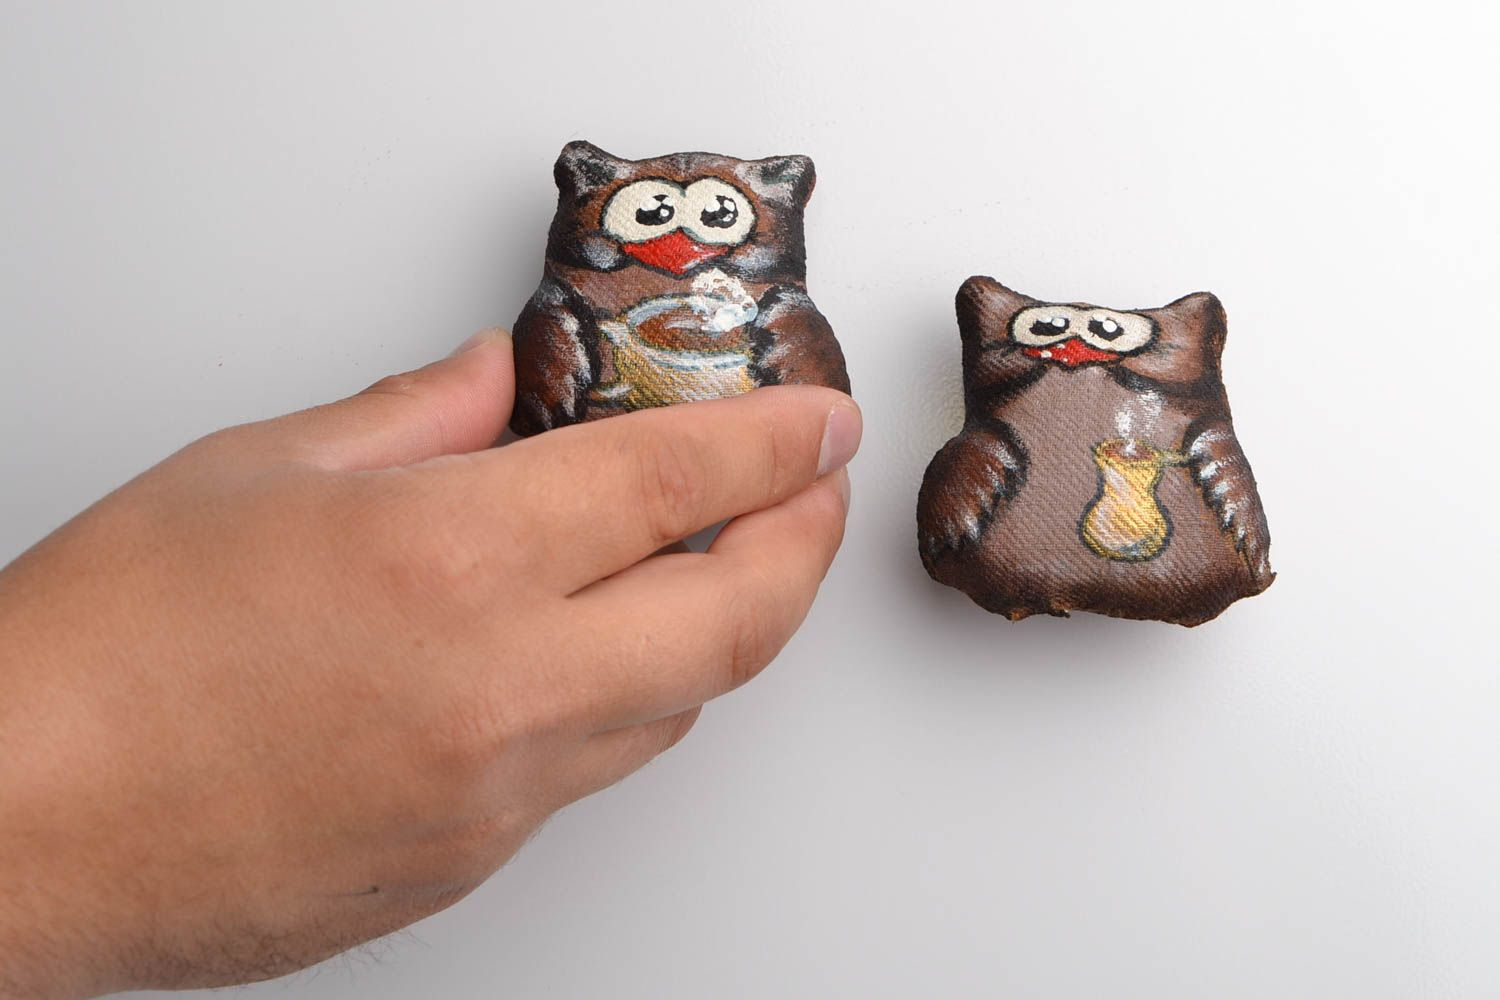 Set of handmade designer flavored fabric soft fridge magnets 2 pieces Owls photo 2